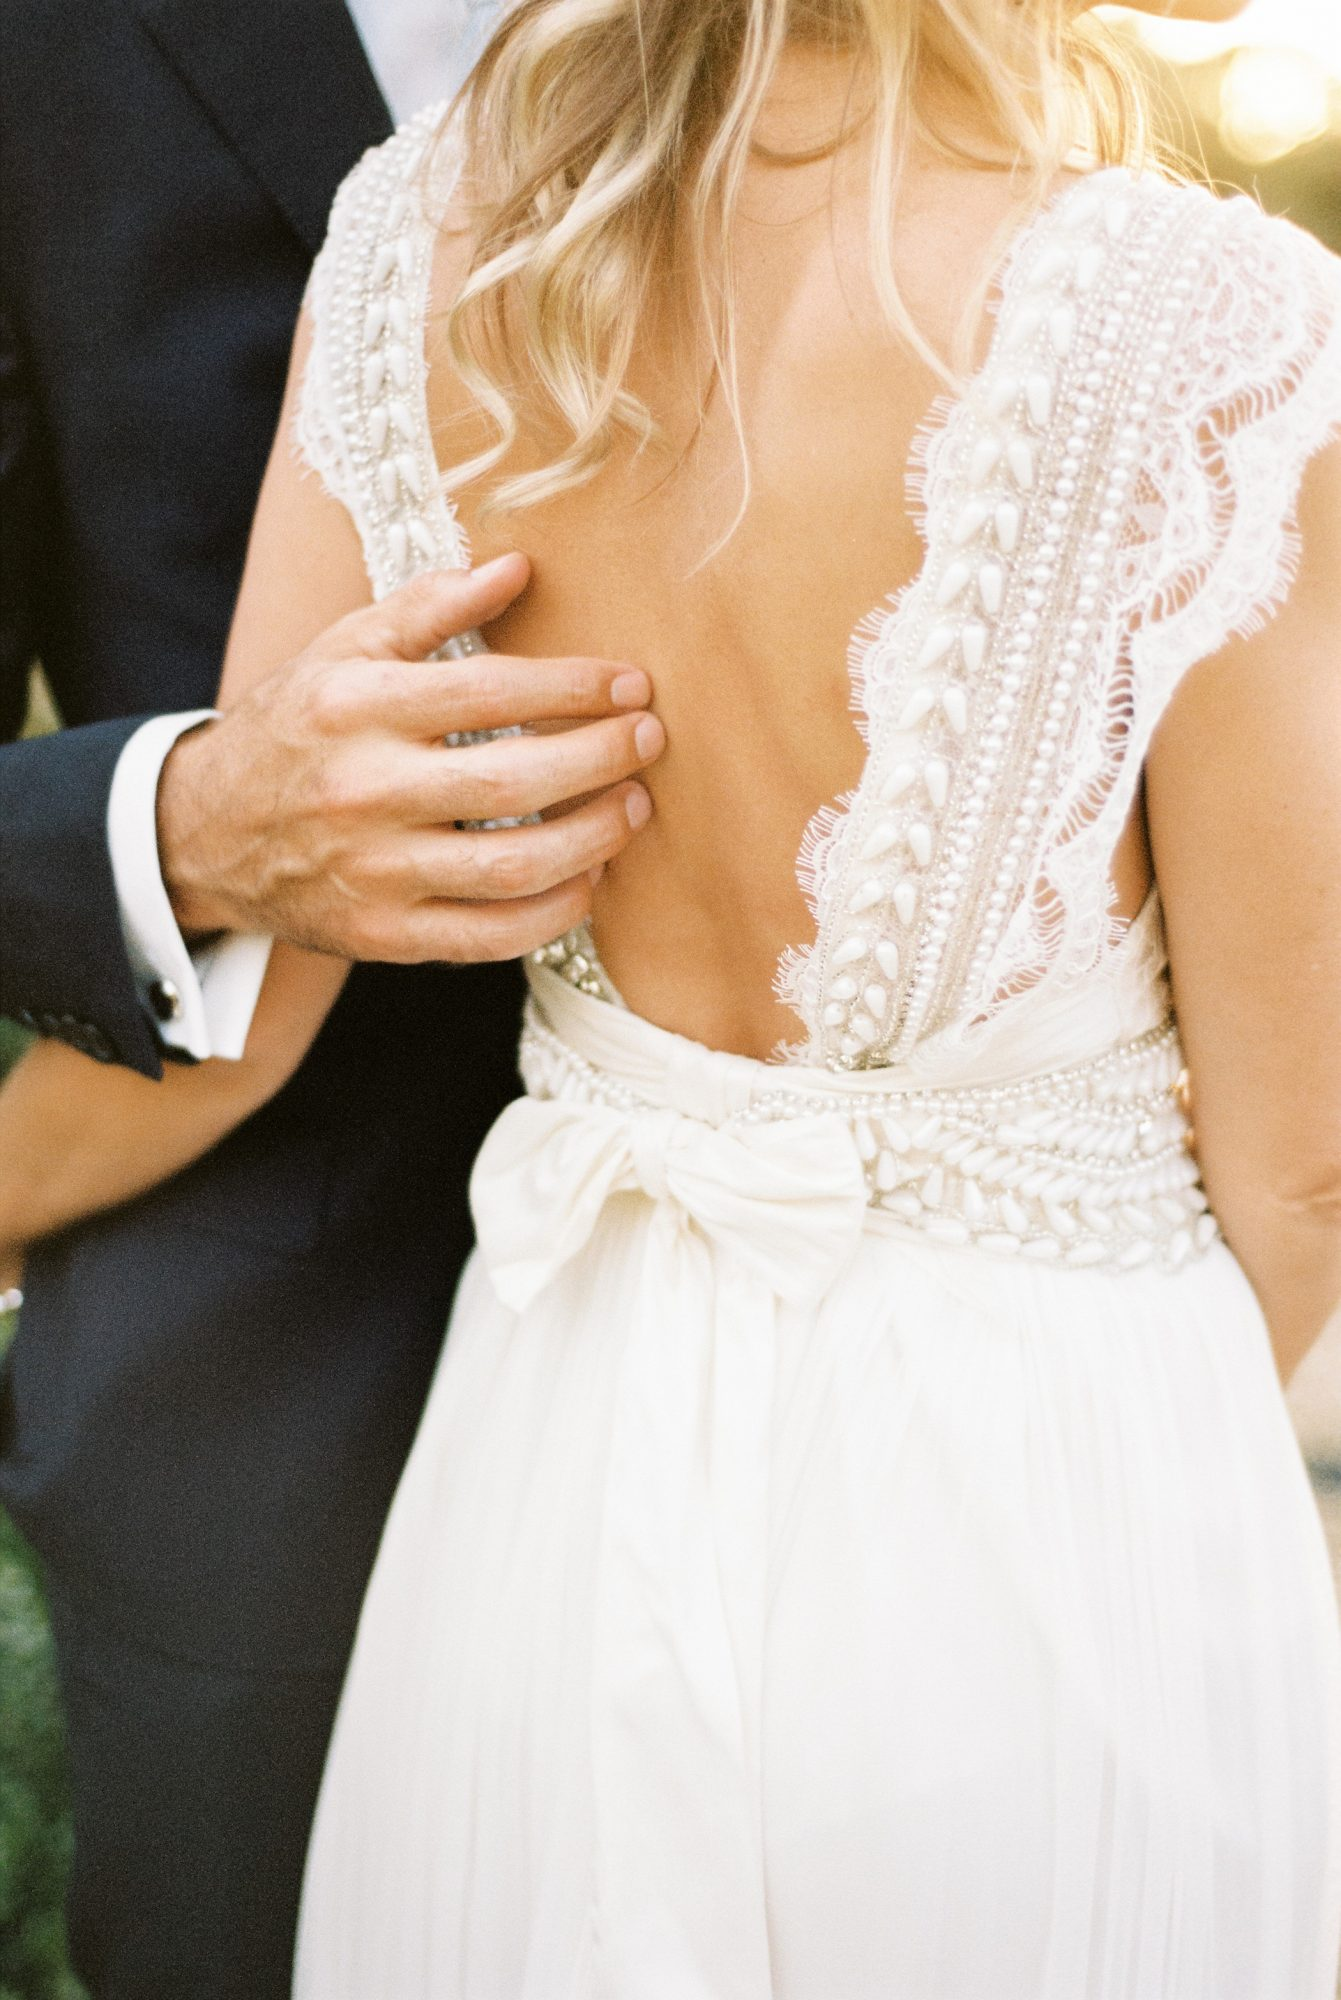 A Bride with an Open-Back Wedding Dress with Embellishments